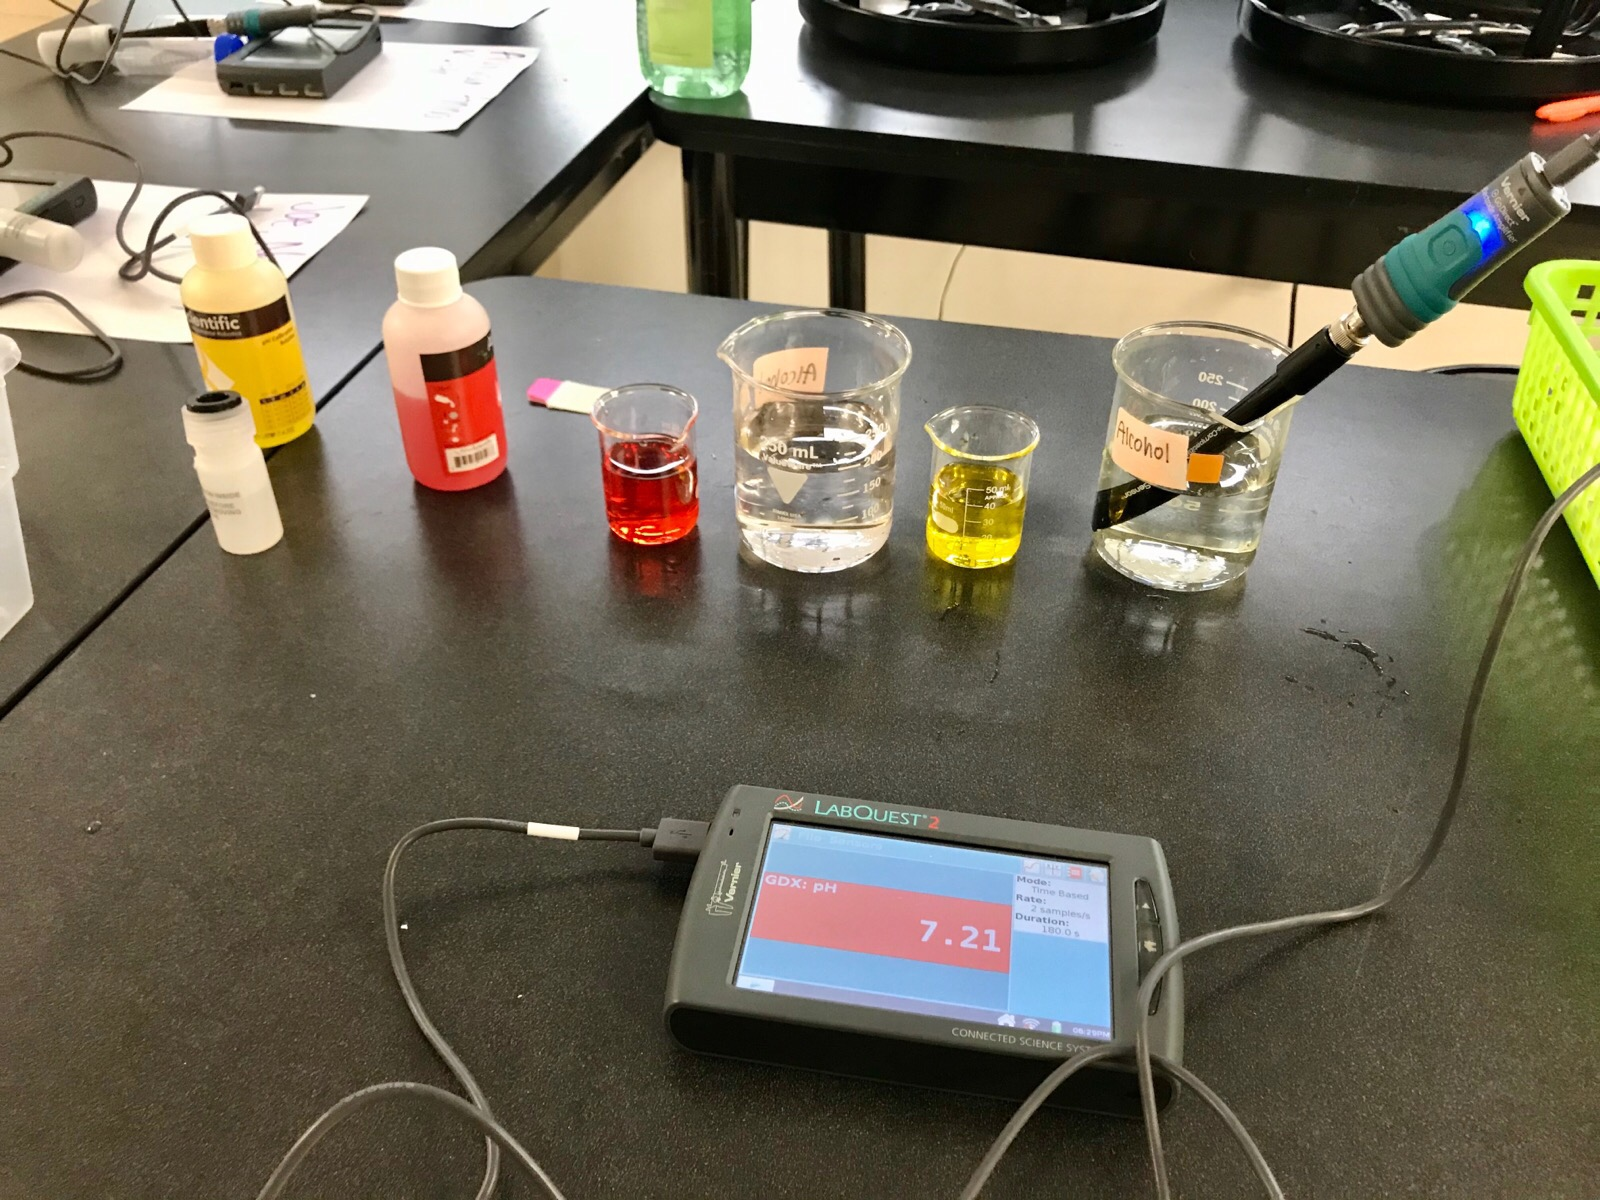 Device and samples lined up ready to test in Ms. Schibuk's Classroom